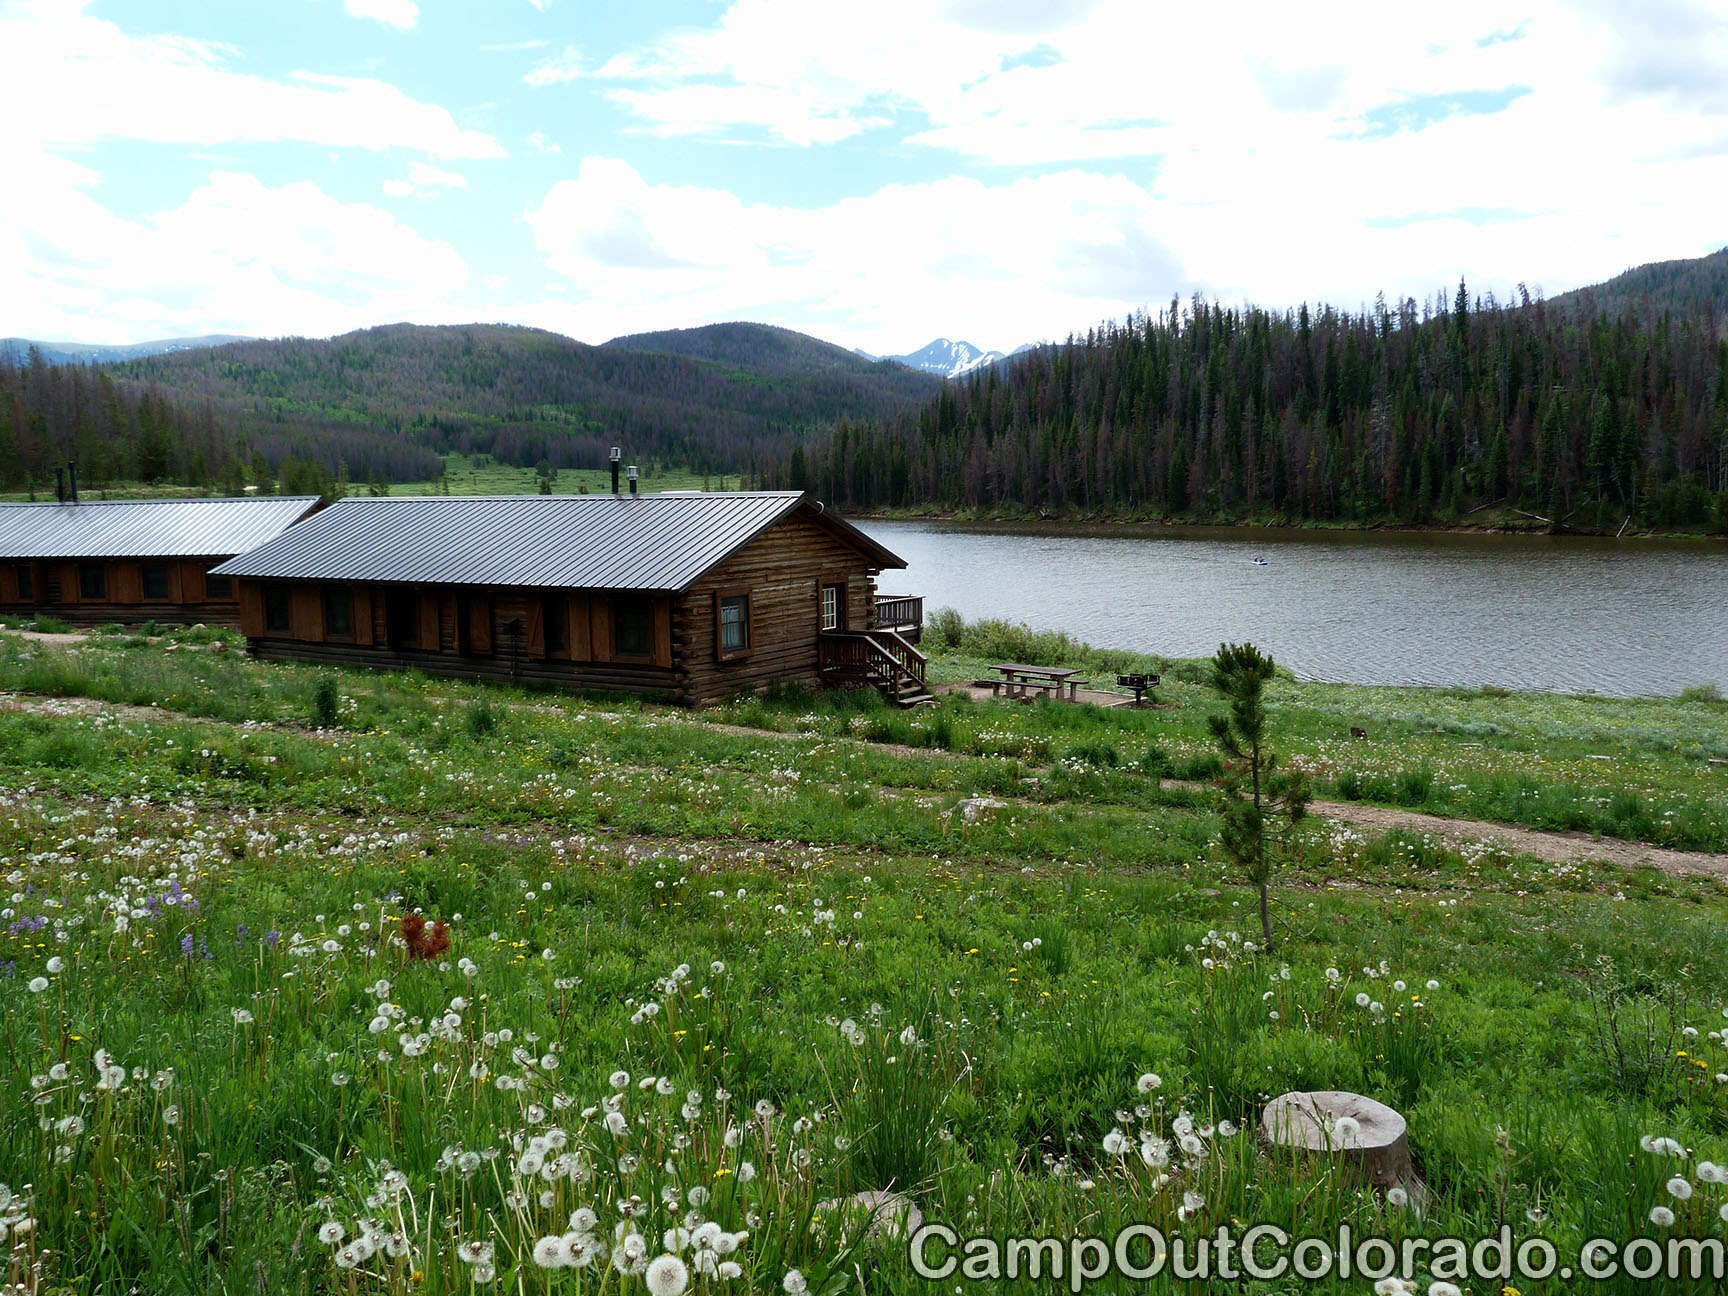 Campoutcolorado-north-michigan-reservoir-campground-big-cabin